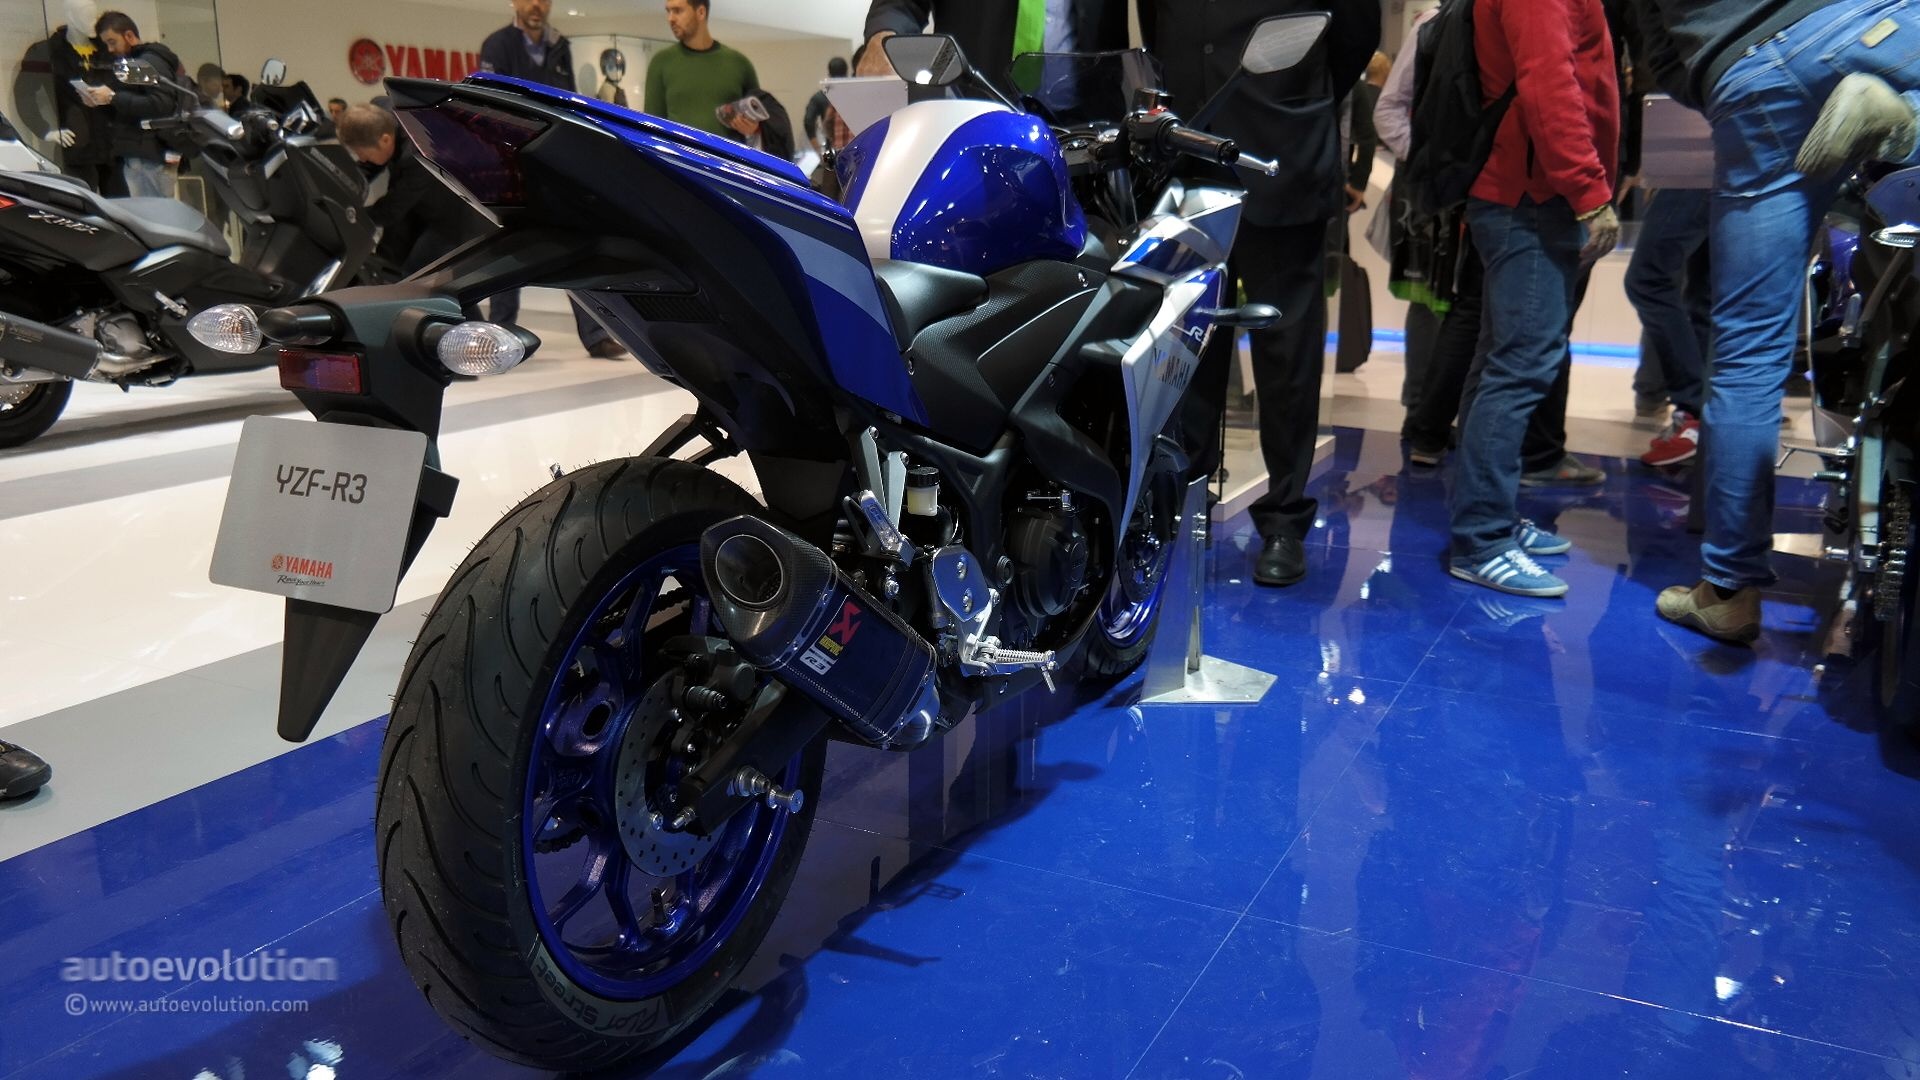 2015 Yamaha Yzf R3 Uses Better Materials Than Expected At Eicma Live Photos Autoevolution